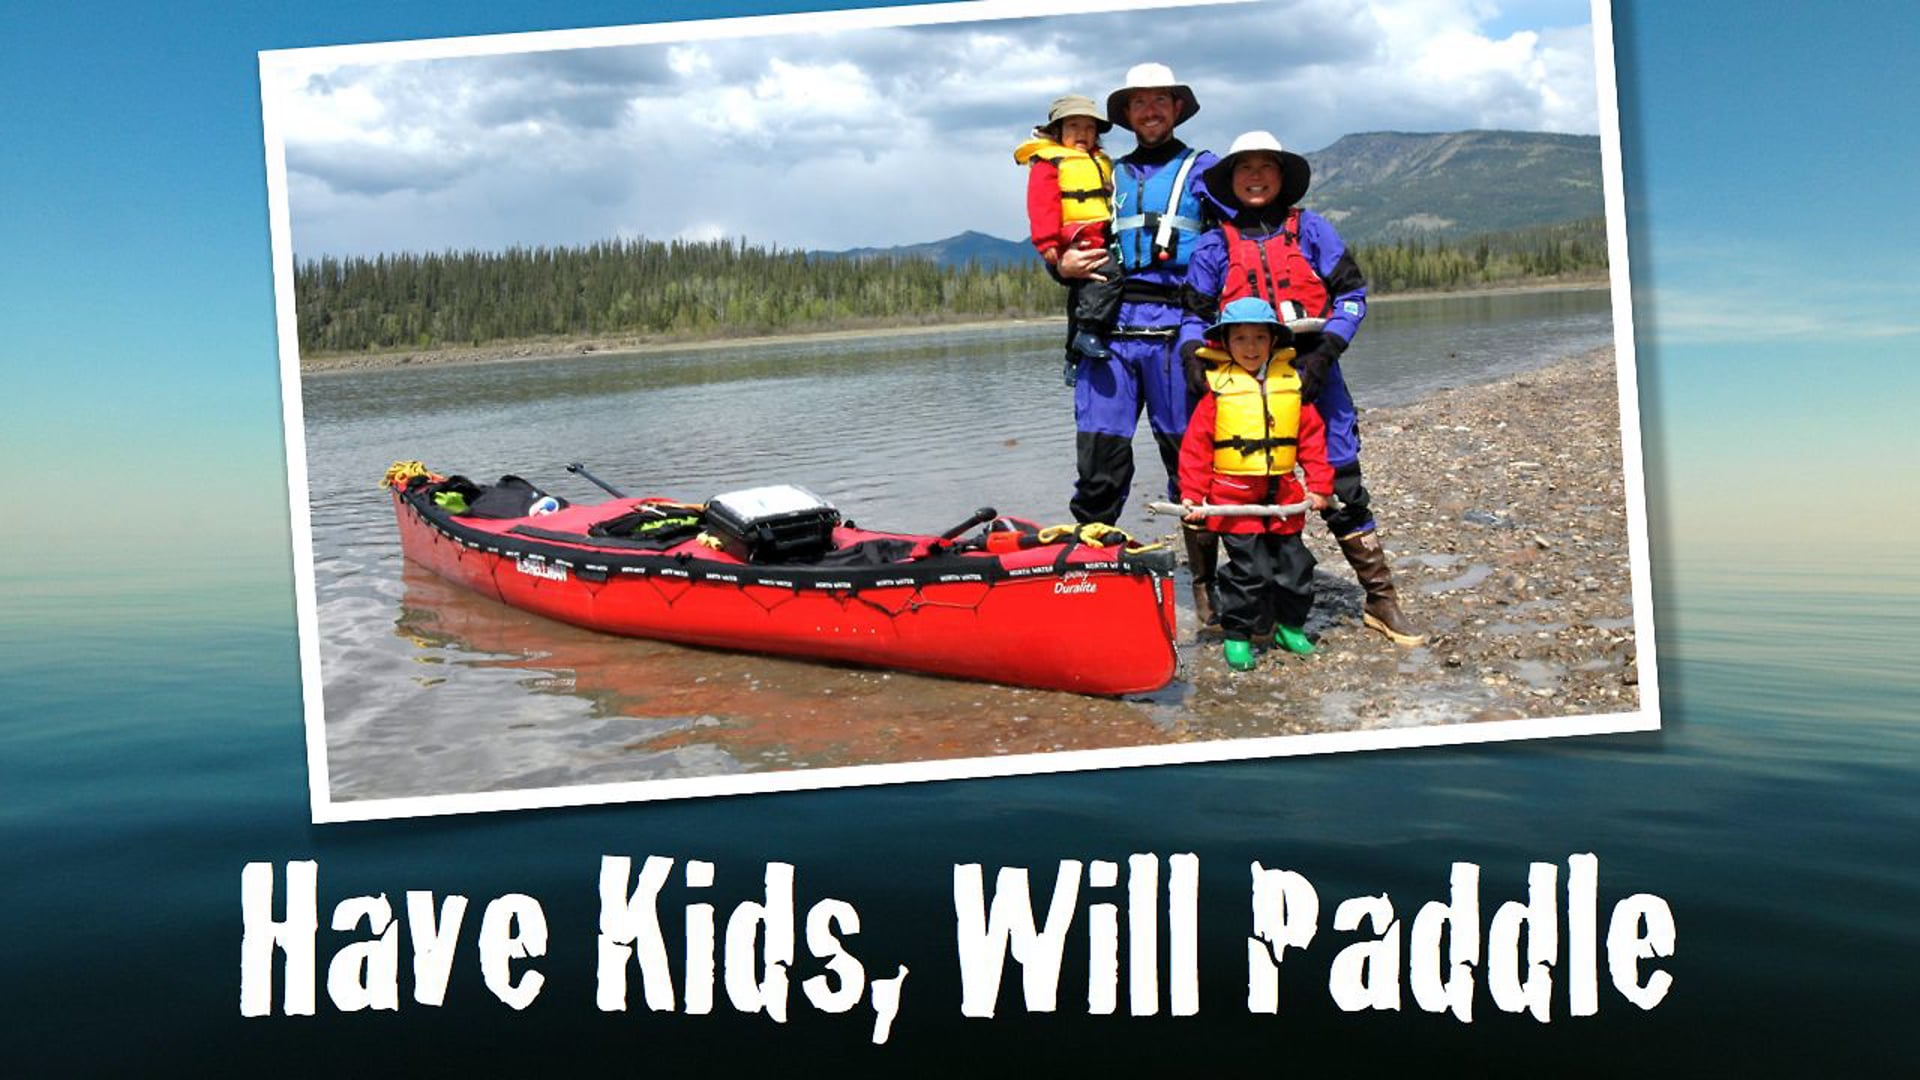 Have Kids, Will Paddle